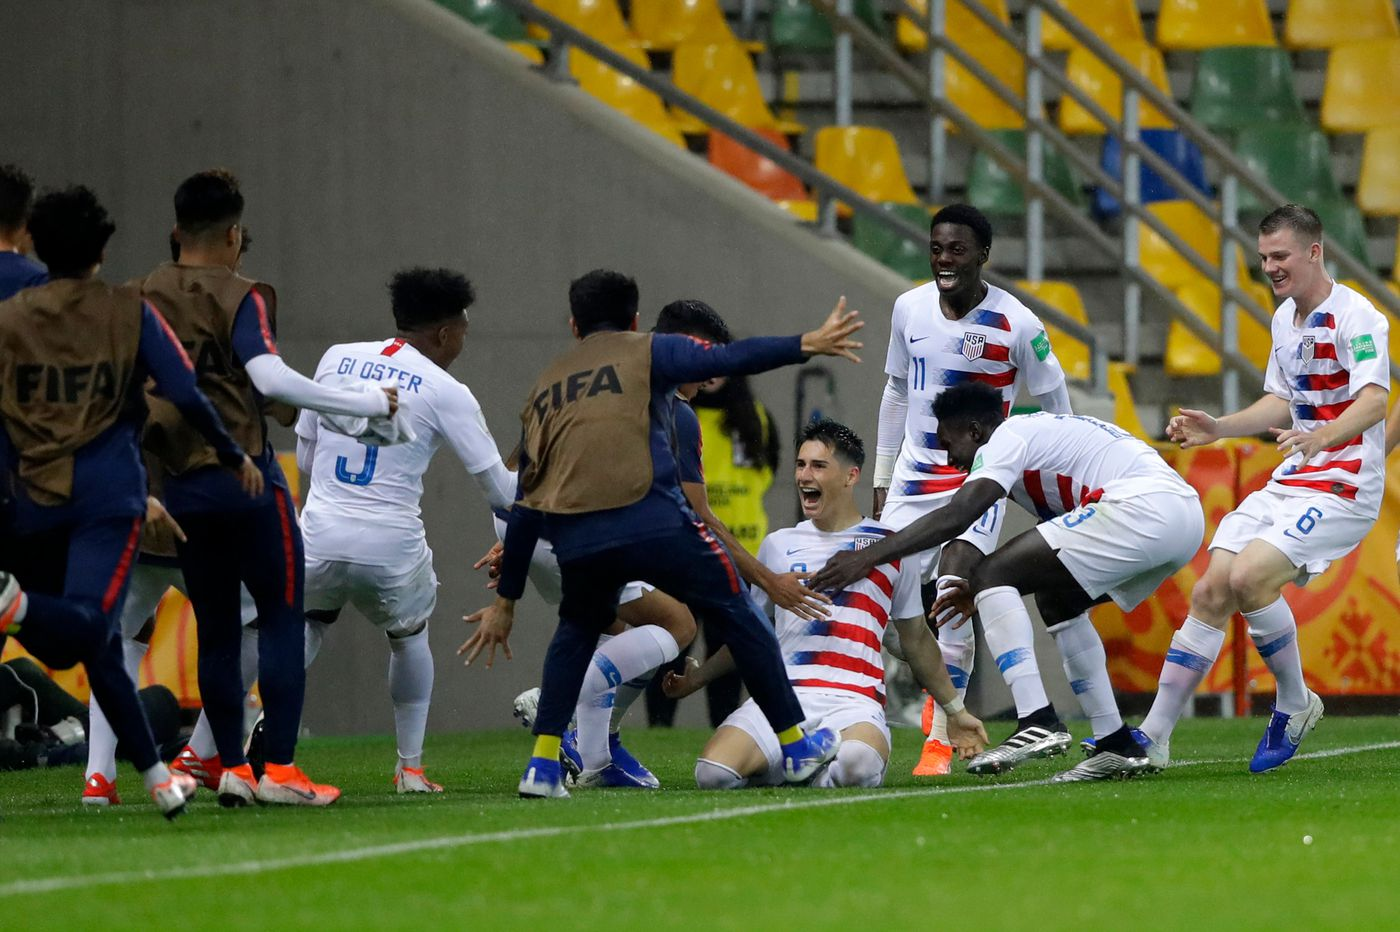 Sebastian Soto's goals give U.S. 2-0 win over Nigeria at under-20 World Cup